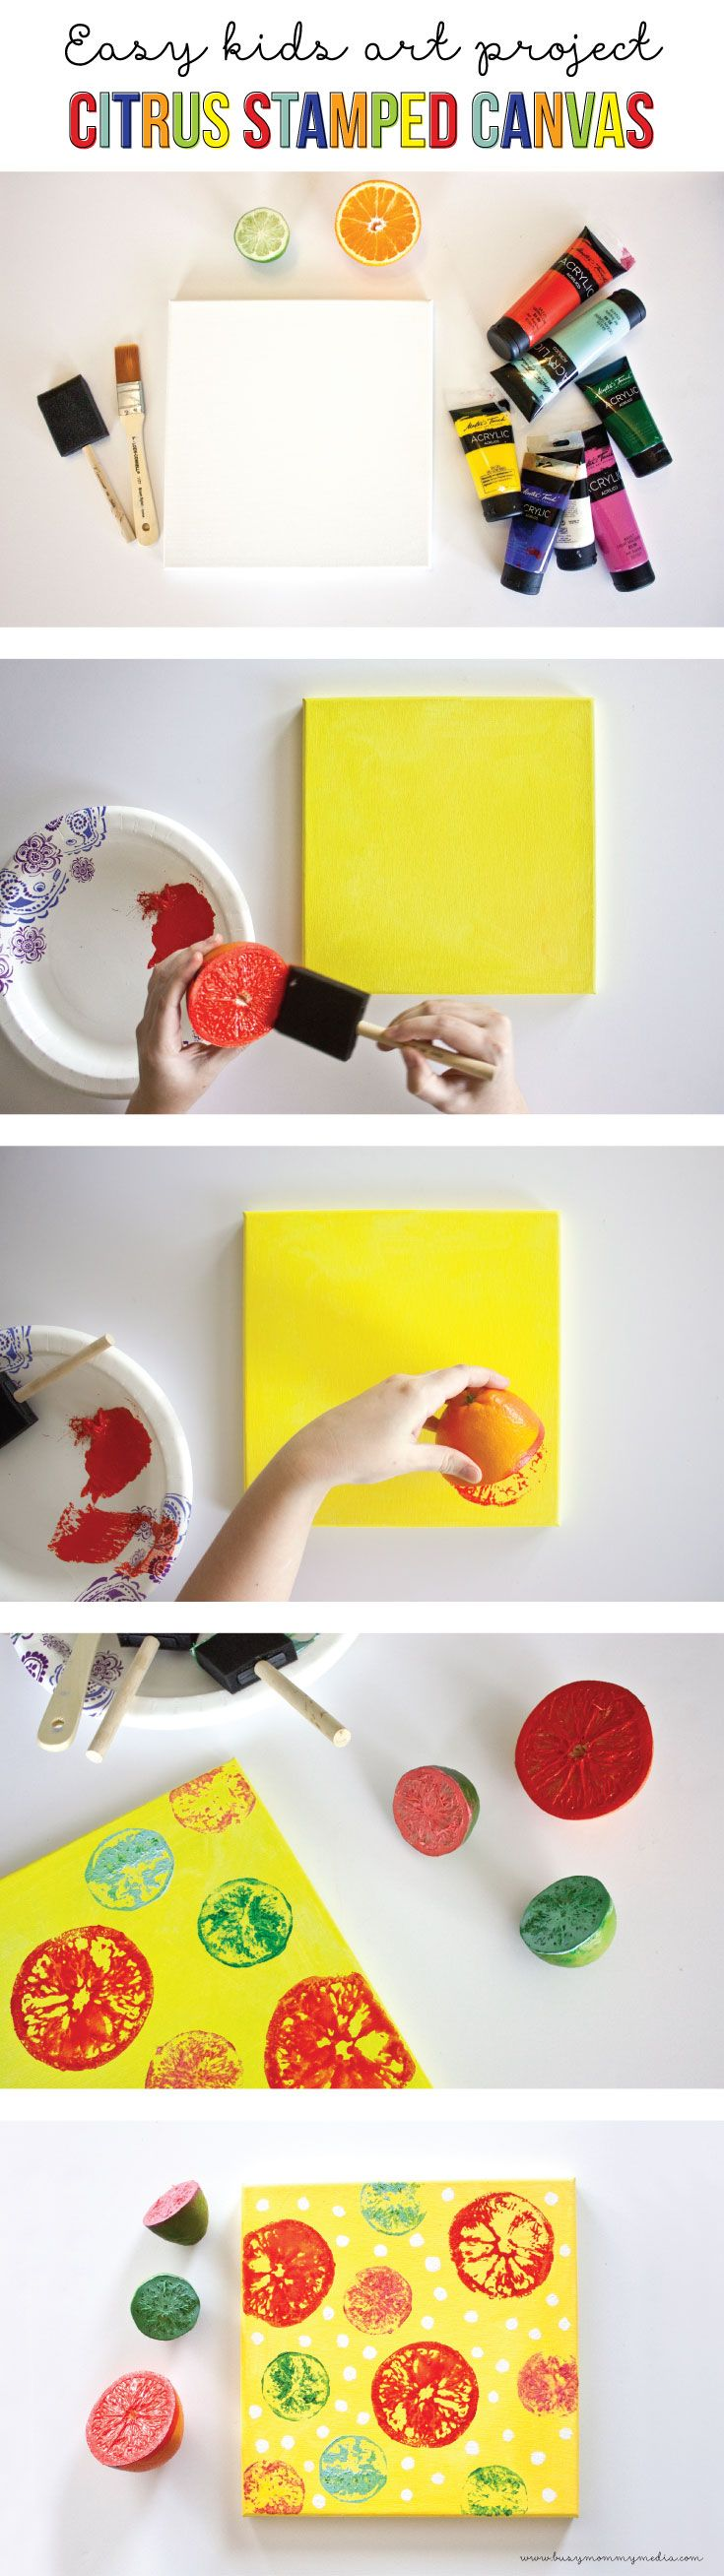 This Citrus Stamped Canvas is such a fun art project for kids and a great way to make some DIY home decor on a budget!